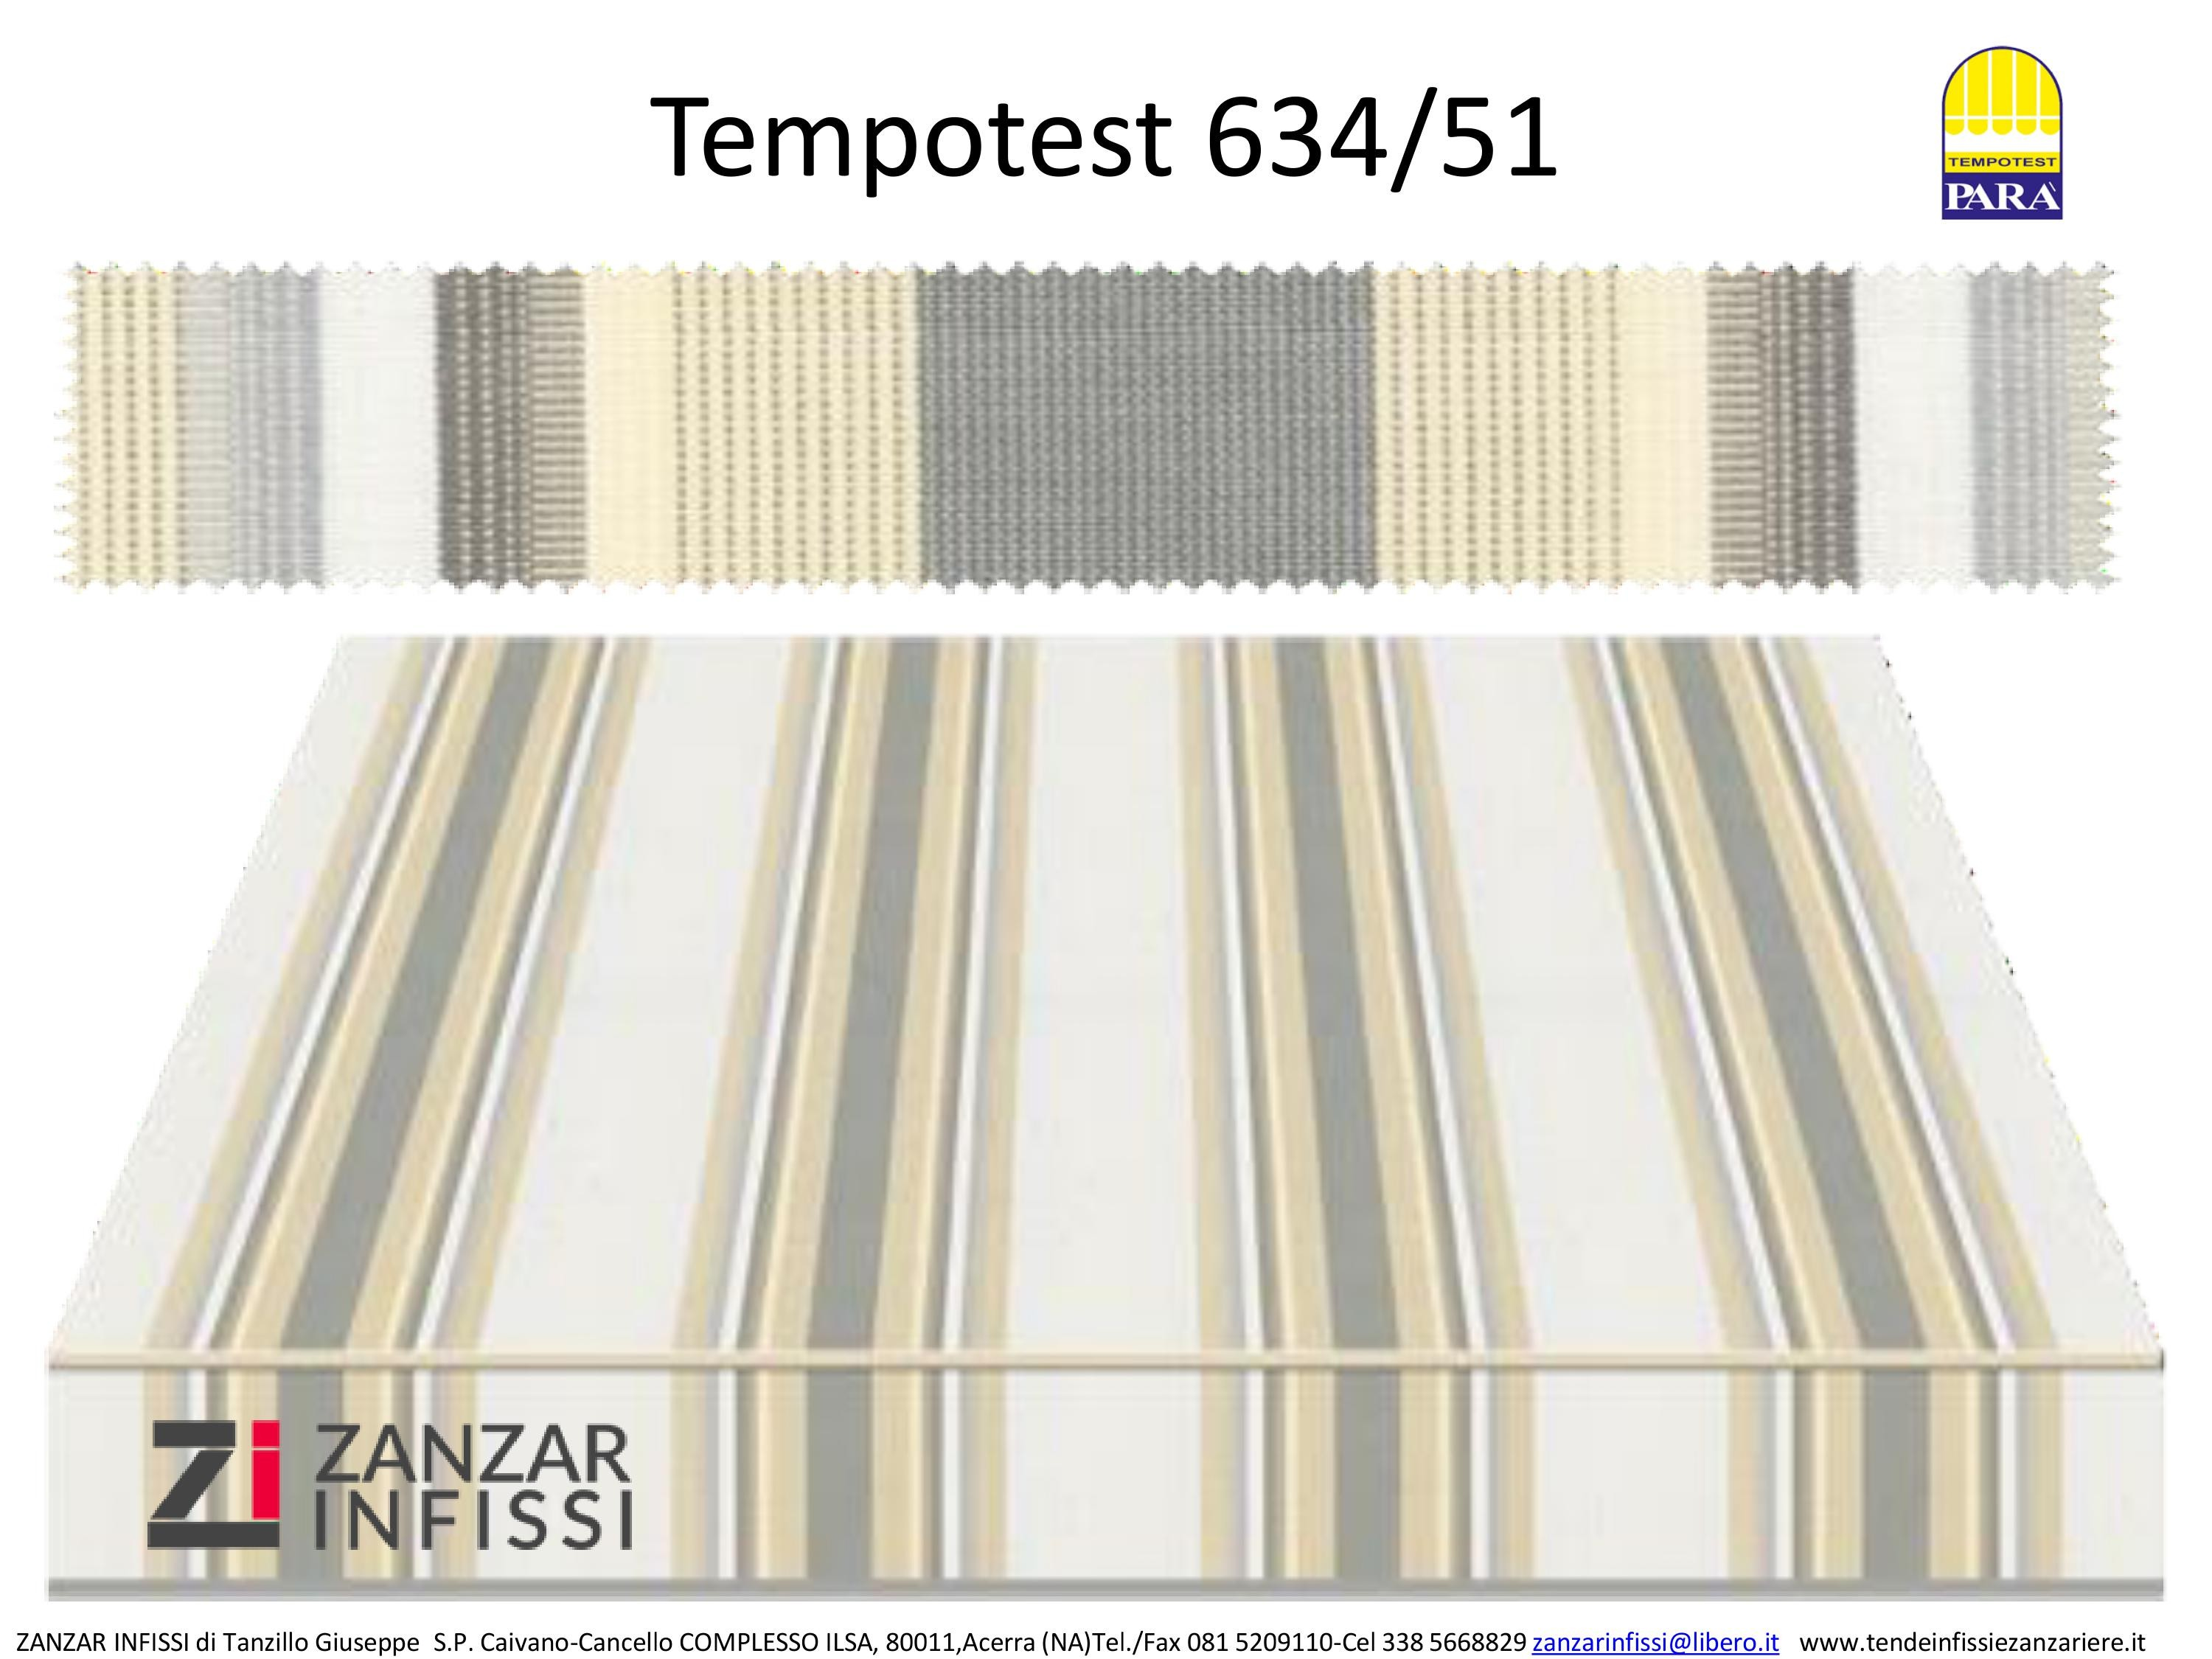 Tempotest 634/51